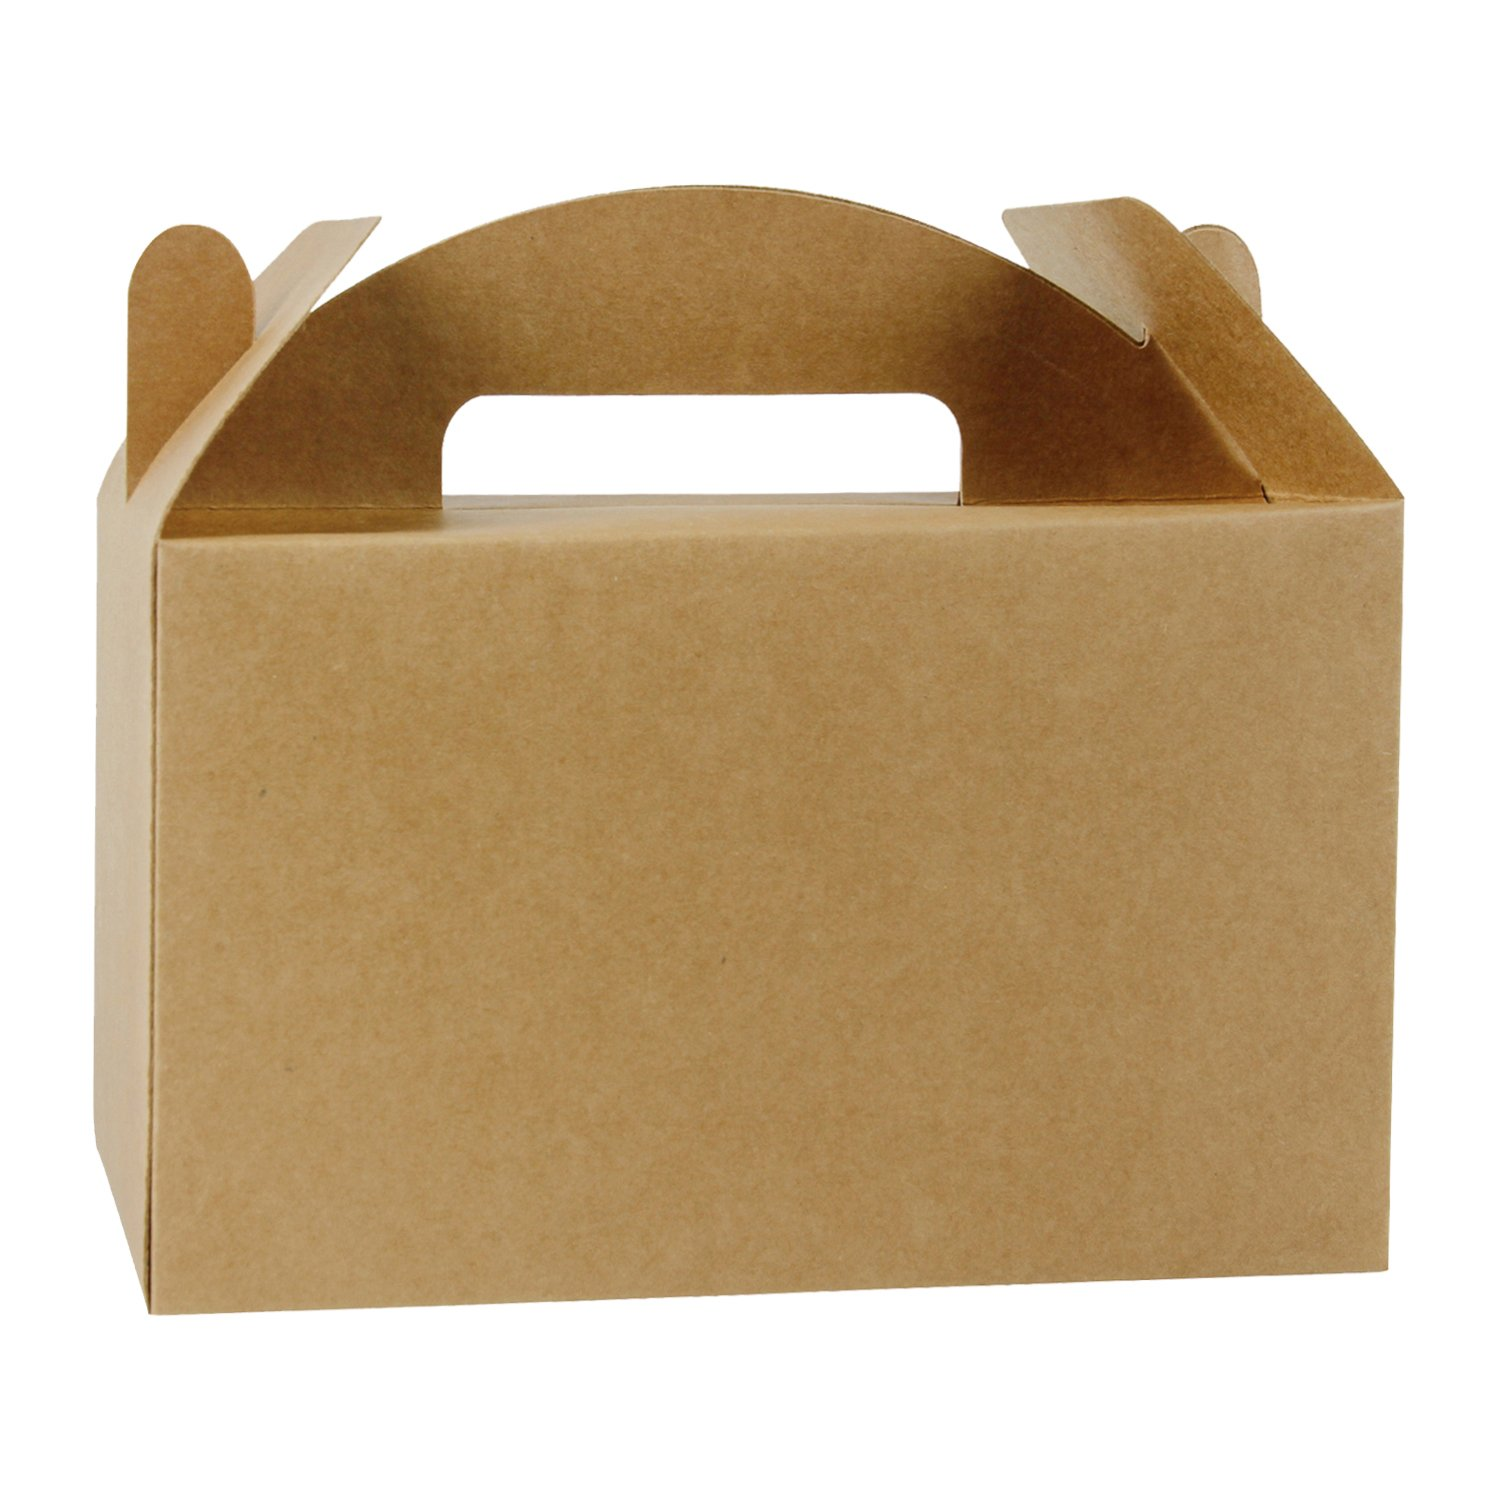 LaRibbons 12 Pack Treat Gift Boxes - 9.5 x 5 x 5 inches Brown Paper Box Recycled Kraft Gift Box Birthday Party Shower Favor Box